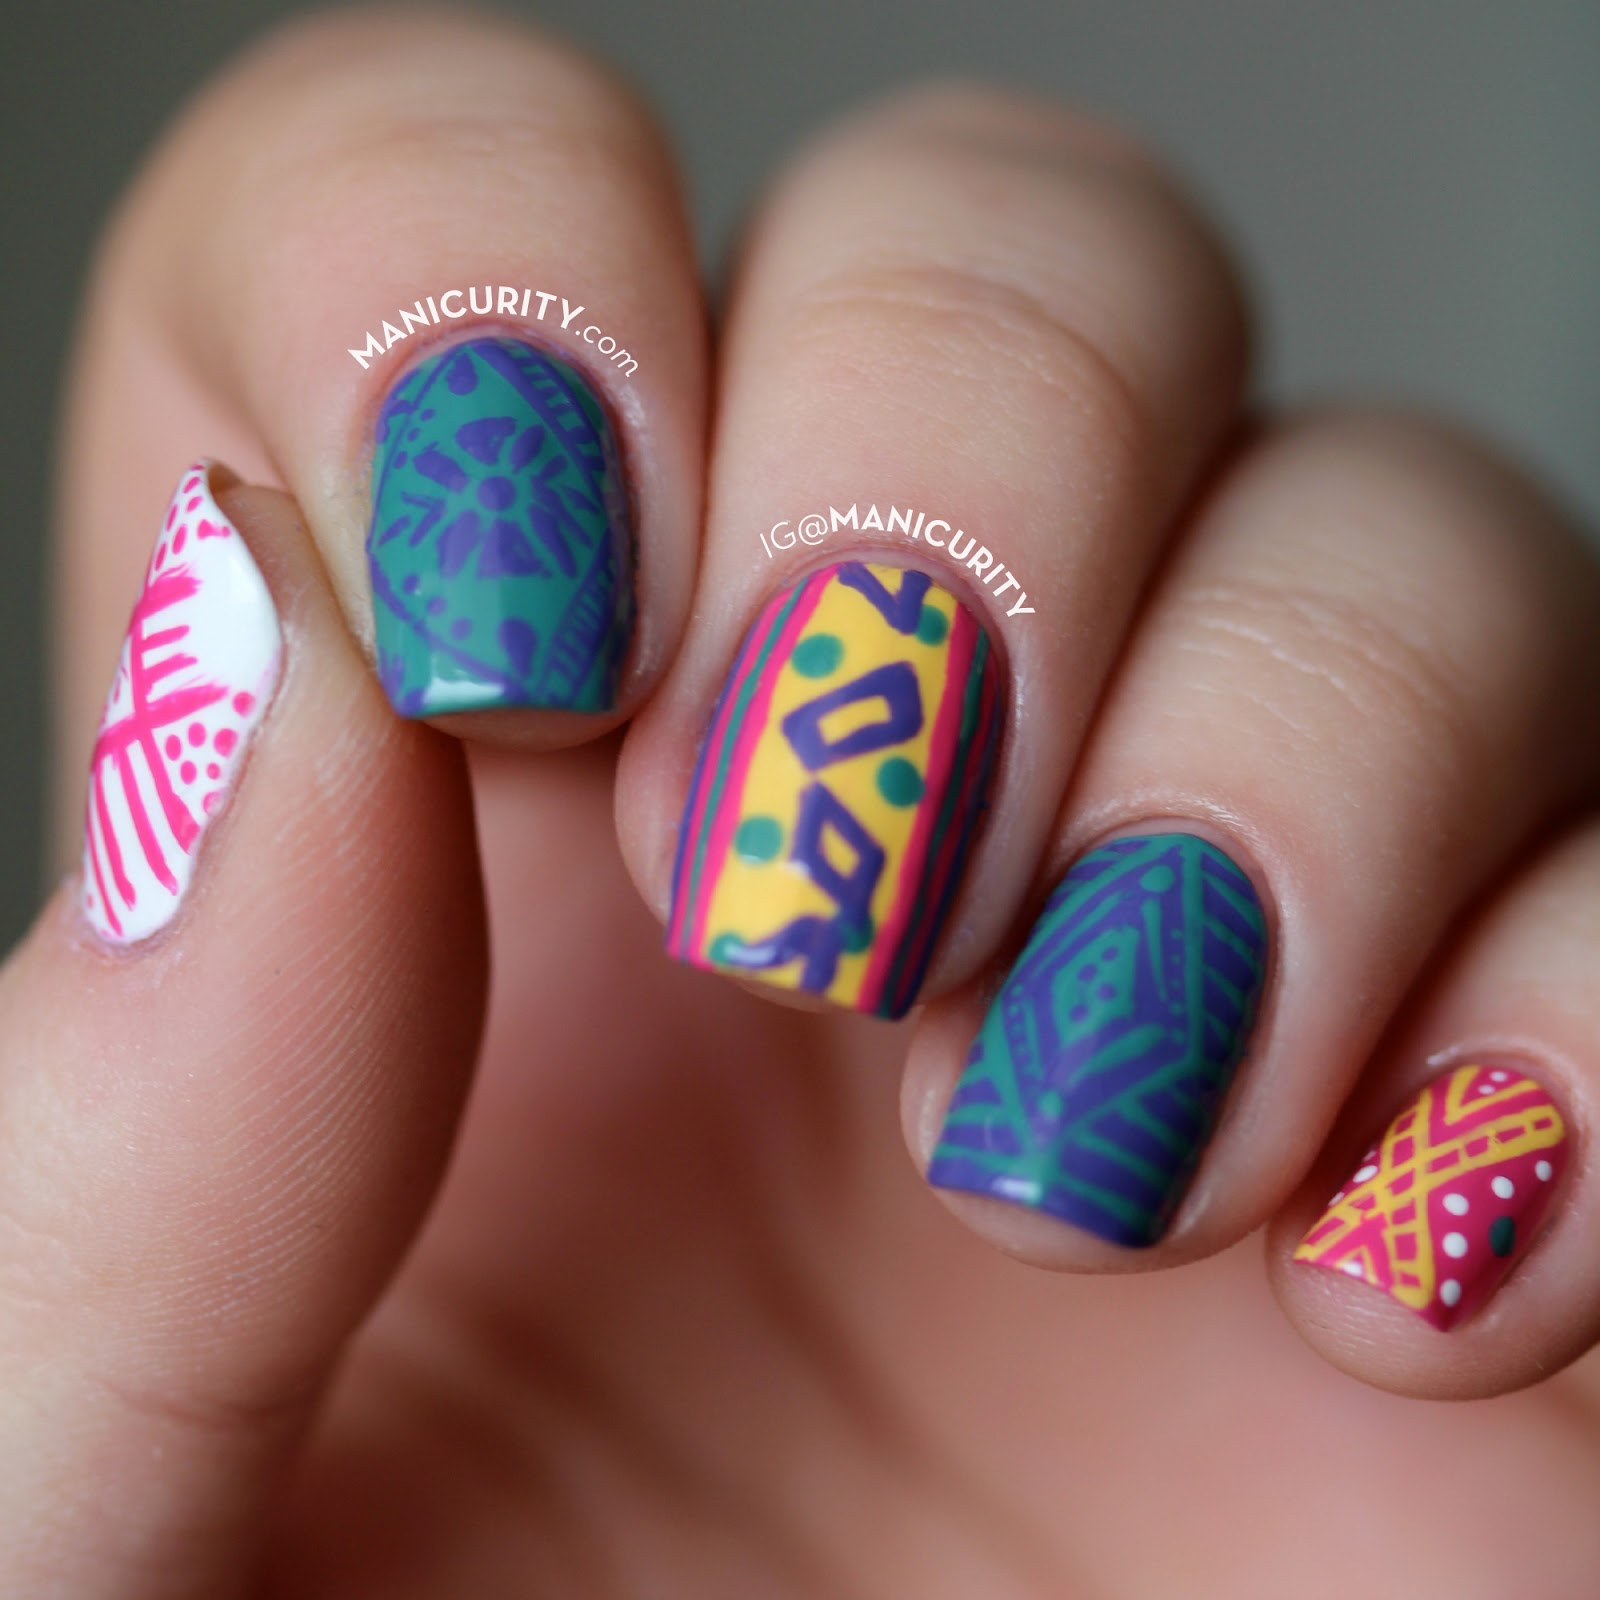 The Digit-al Dozen: Freehand Peruvian Textile-Inspired Nail Art - vibrant skittle set of abstract linework nails | Manicurity.com